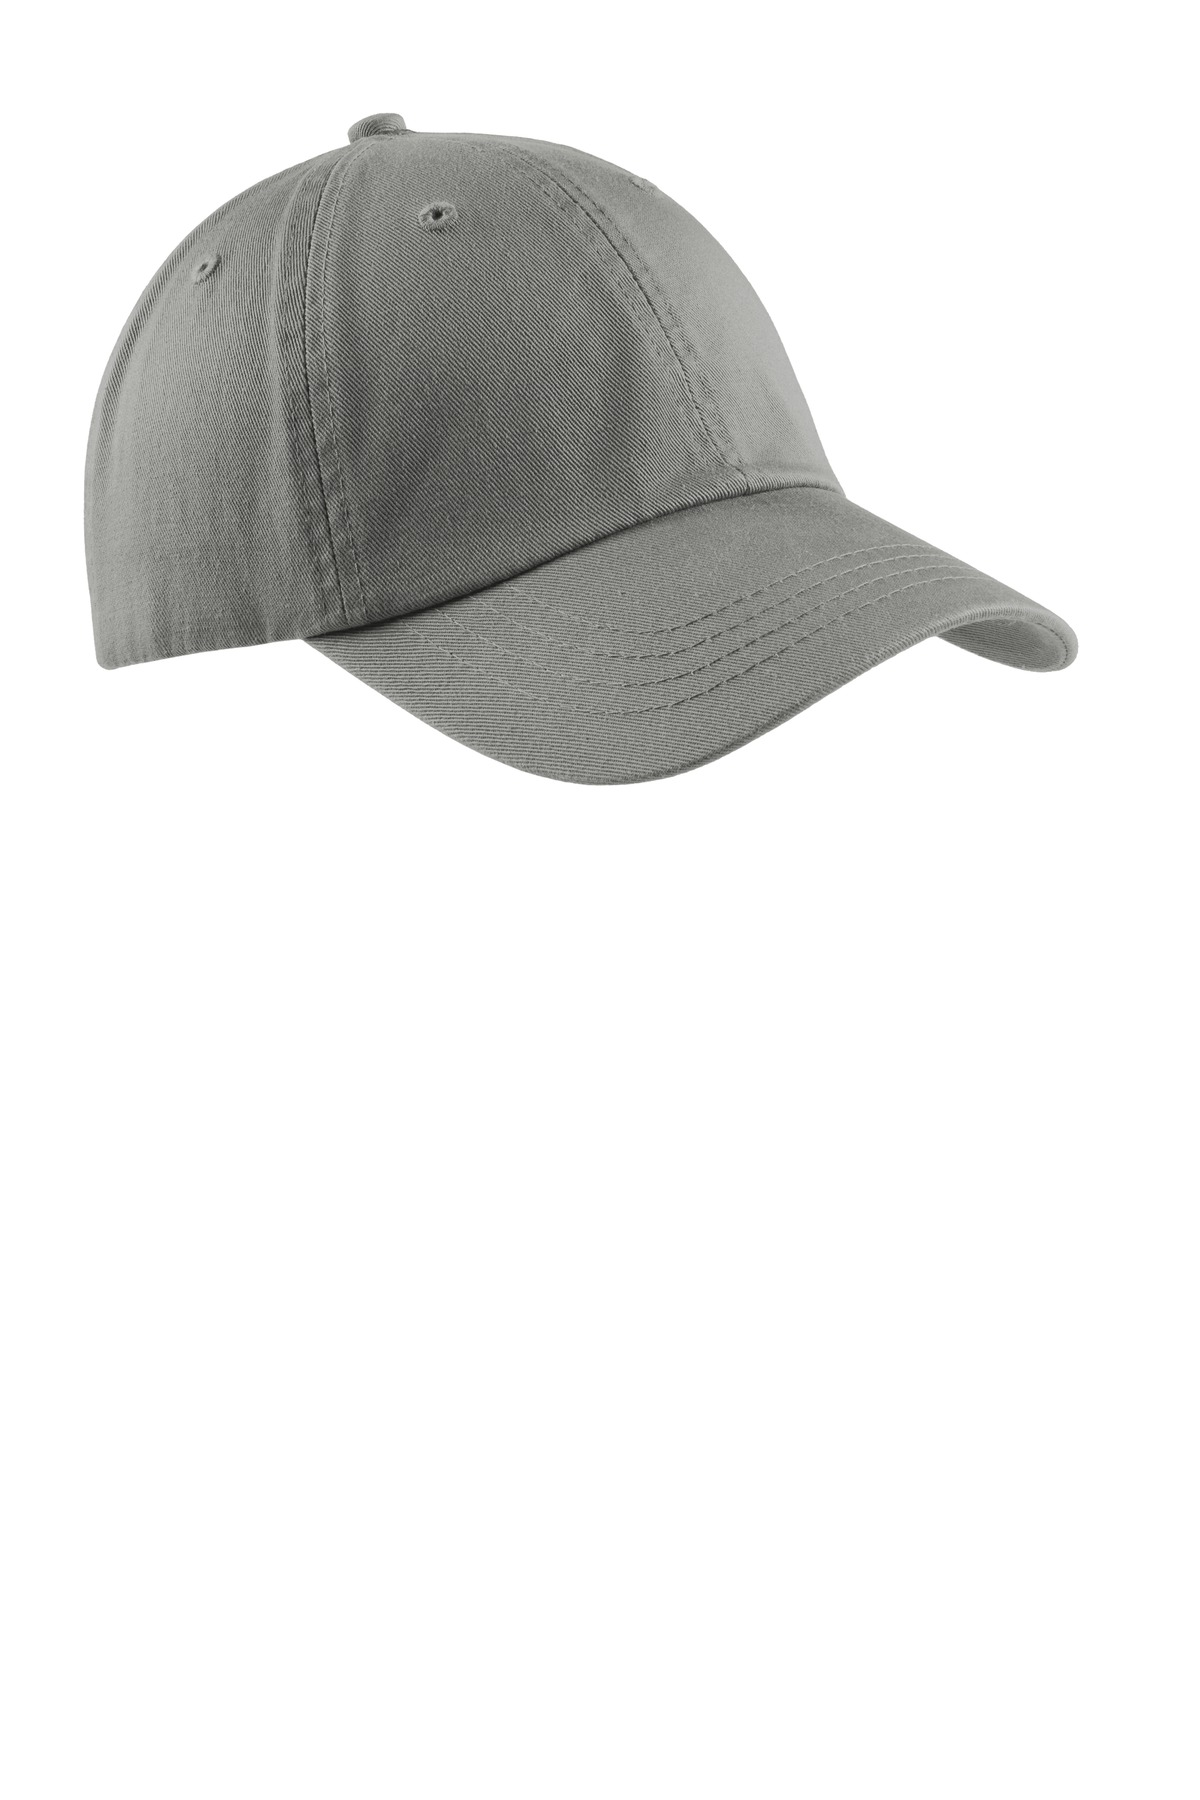 Port & Company ®  - Washed Twill Cap.  CP78 - Deep Smoke